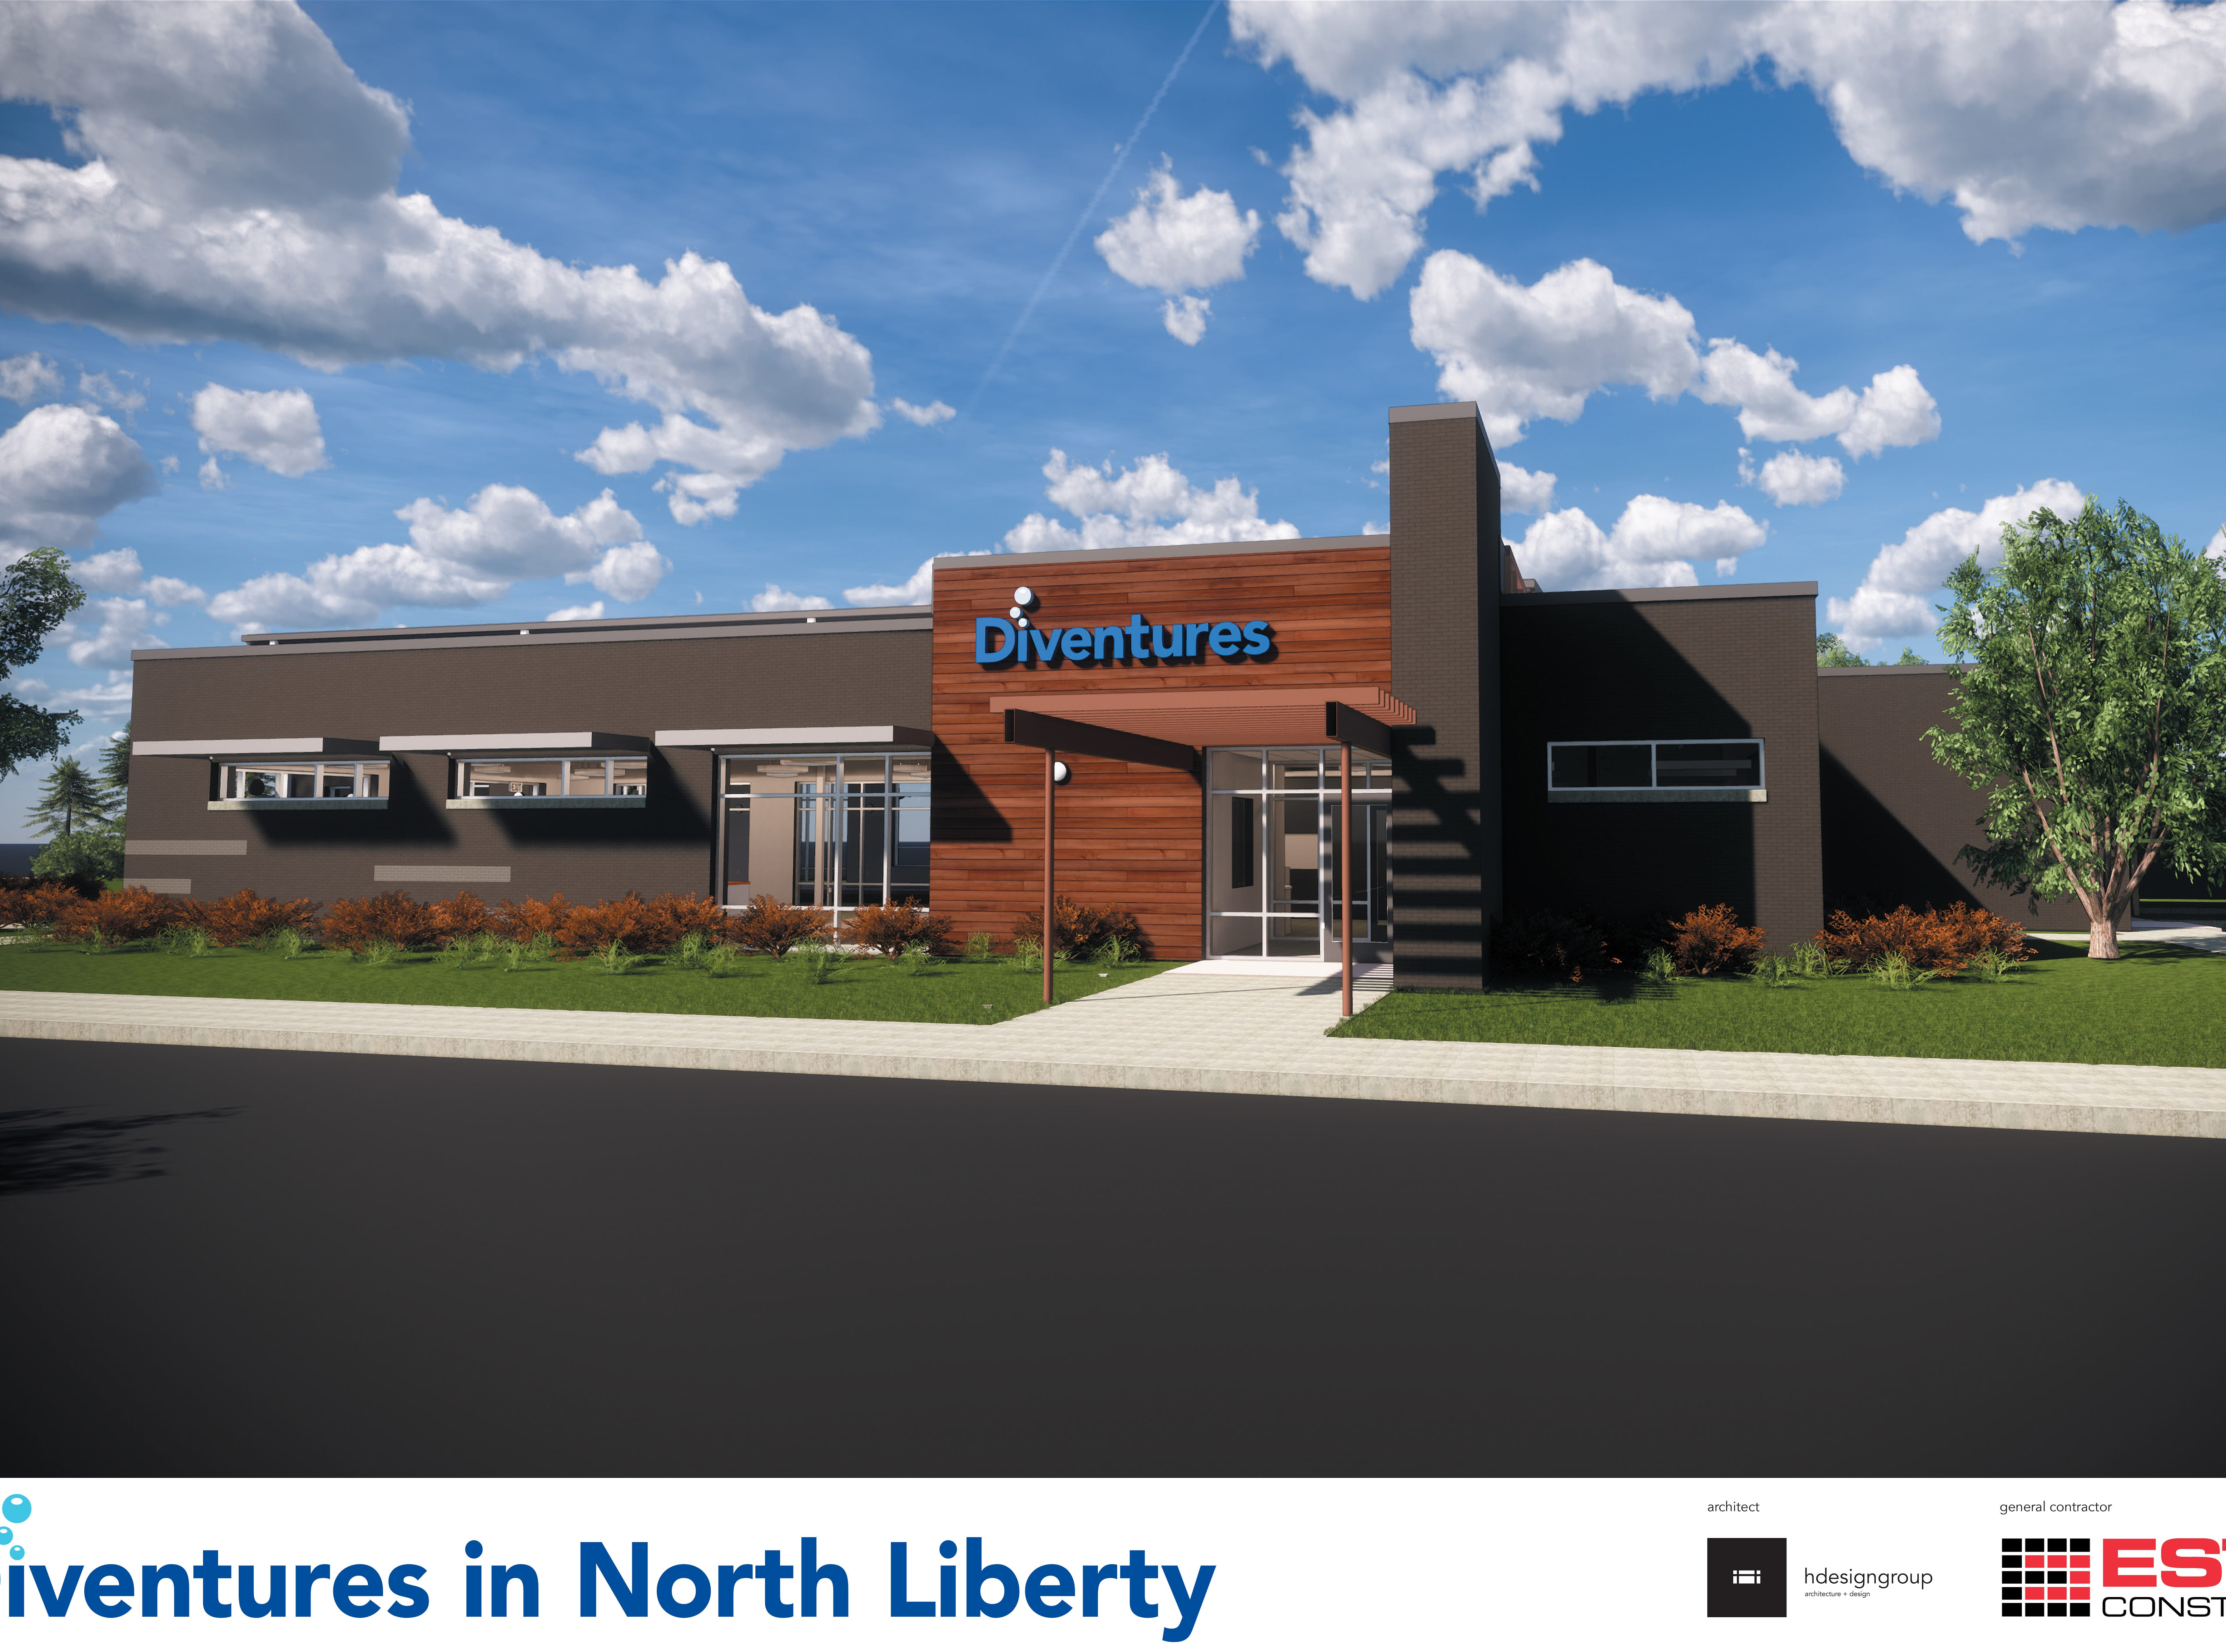 This 2019 rendering provided by Diventures shows the west side of its new location at 1895 West Penn Street in North Liberty, Iowa.